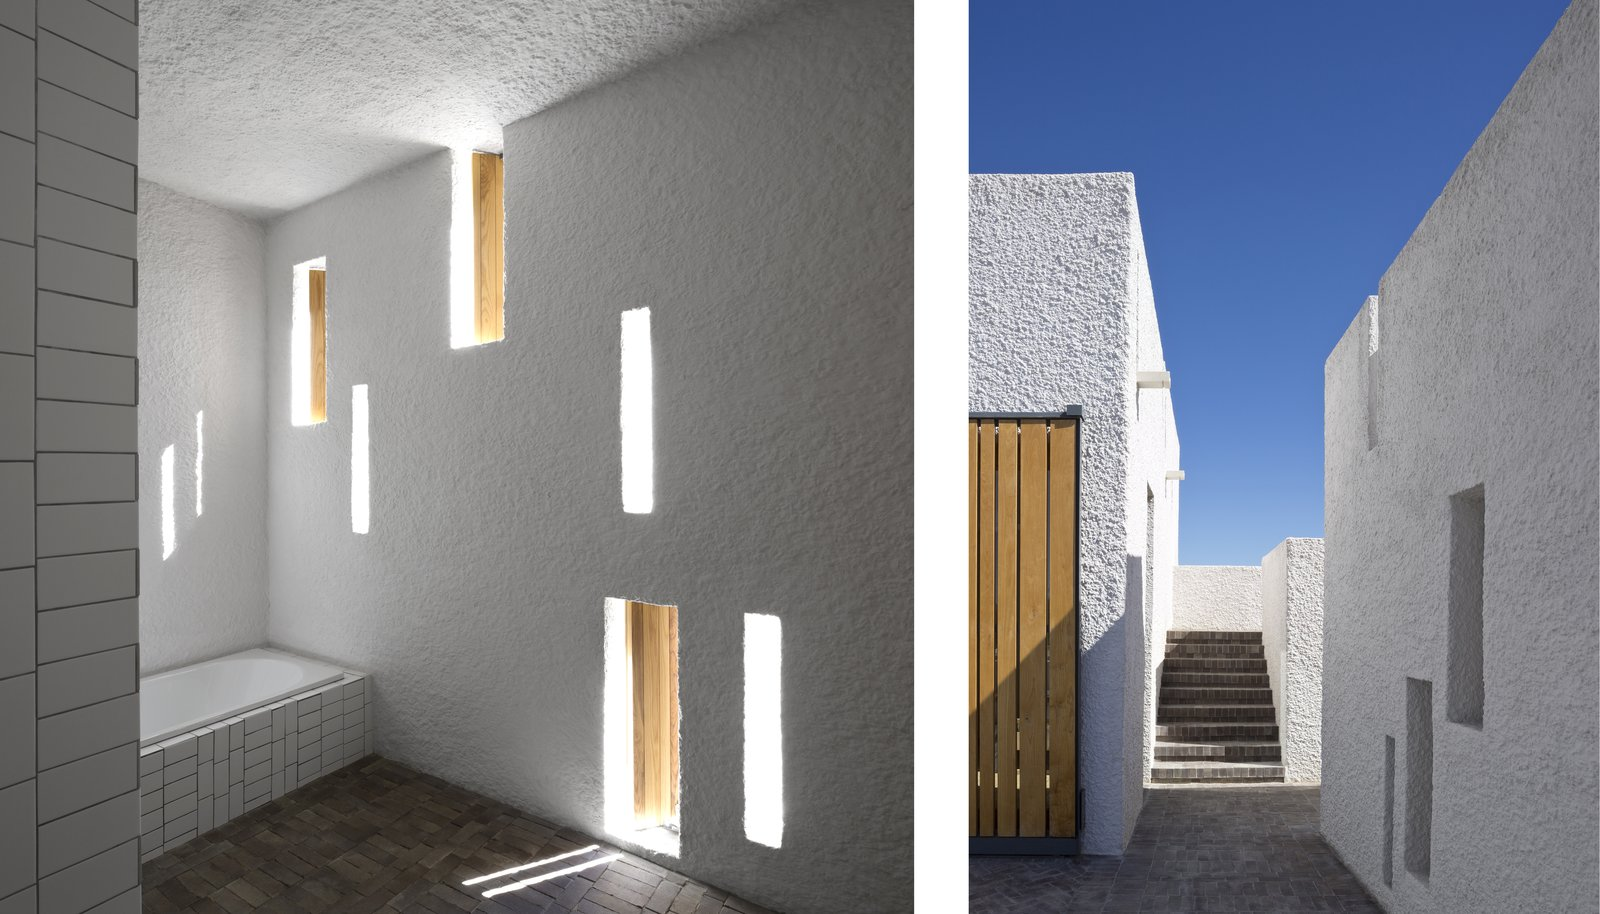 A series of narrow, vertical window openings punctuate the thick-walled facade of the structure, which is optimized for passive solar gains (left). A consistent application of surface materials throughout the interior and courtyard bridge the connection between indoors and out (right).  Photo 5 of 7 in A Minimalist Retreat at the Edge of South Africa's Karoo Desert